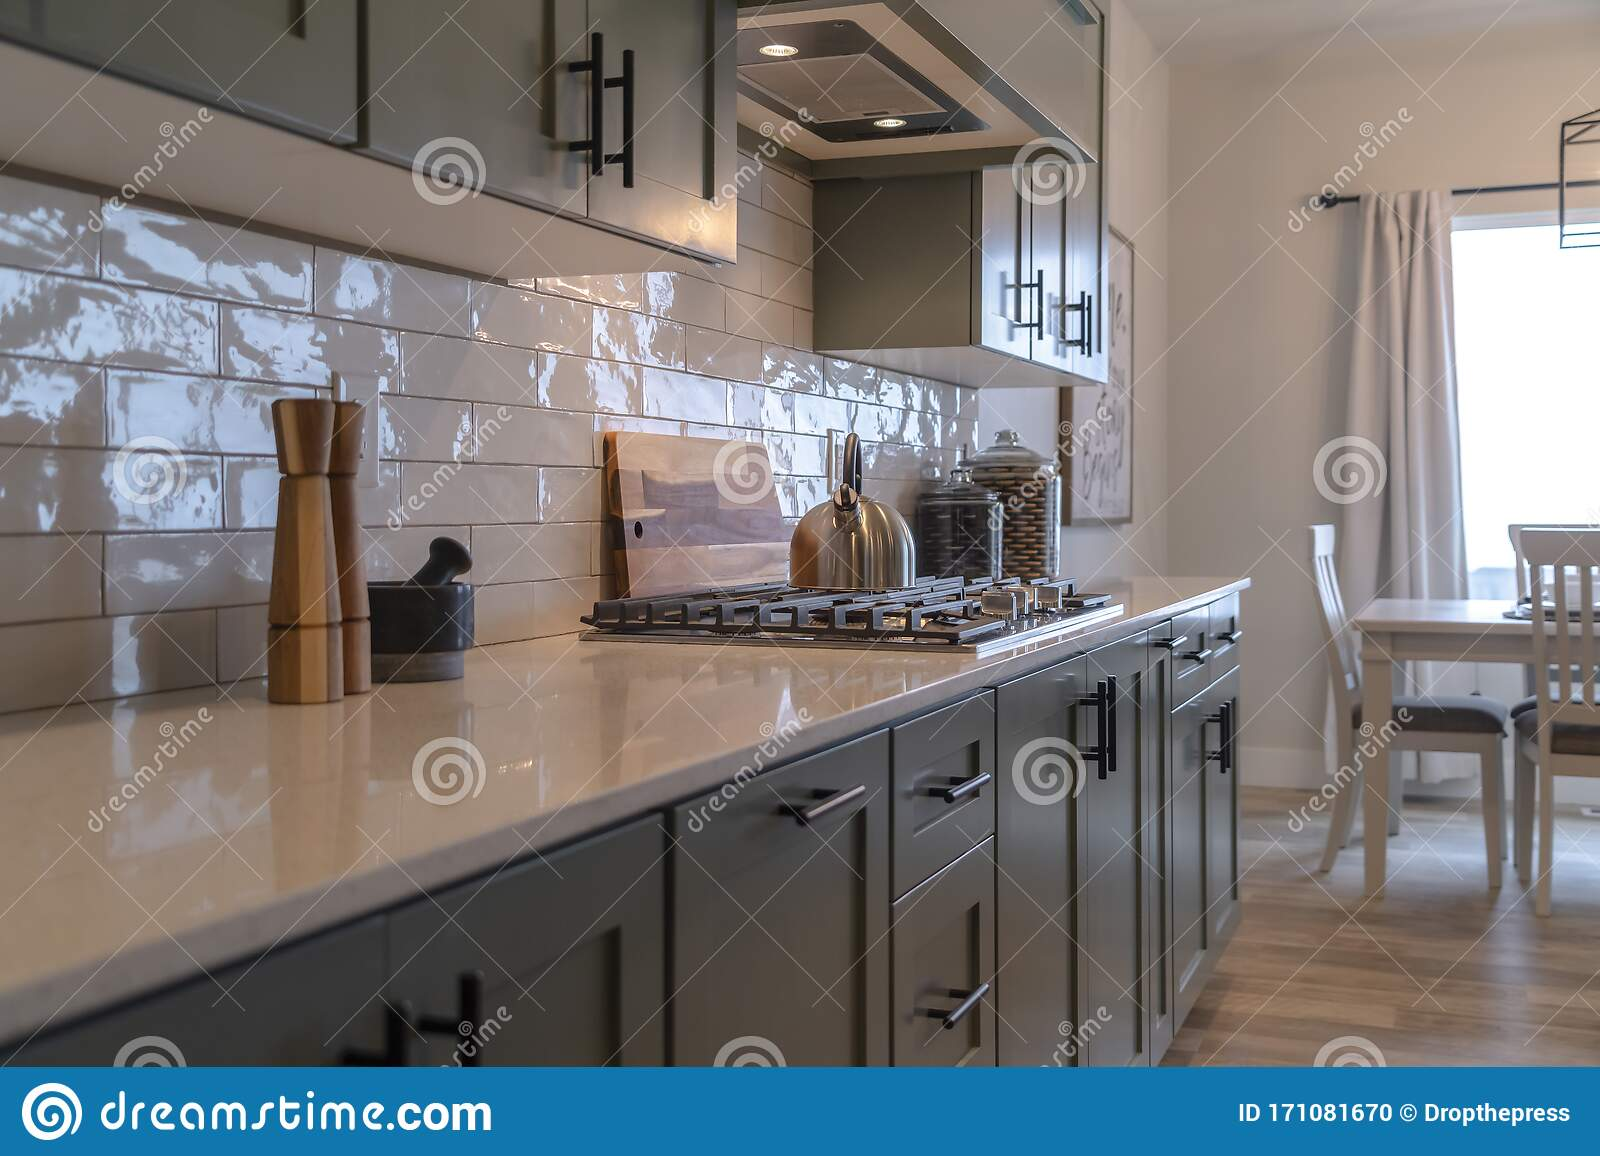 https www dreamstime com kitchen work area cabinets cooktop countertop tile backsplash dining room front large window can be seen image171081670